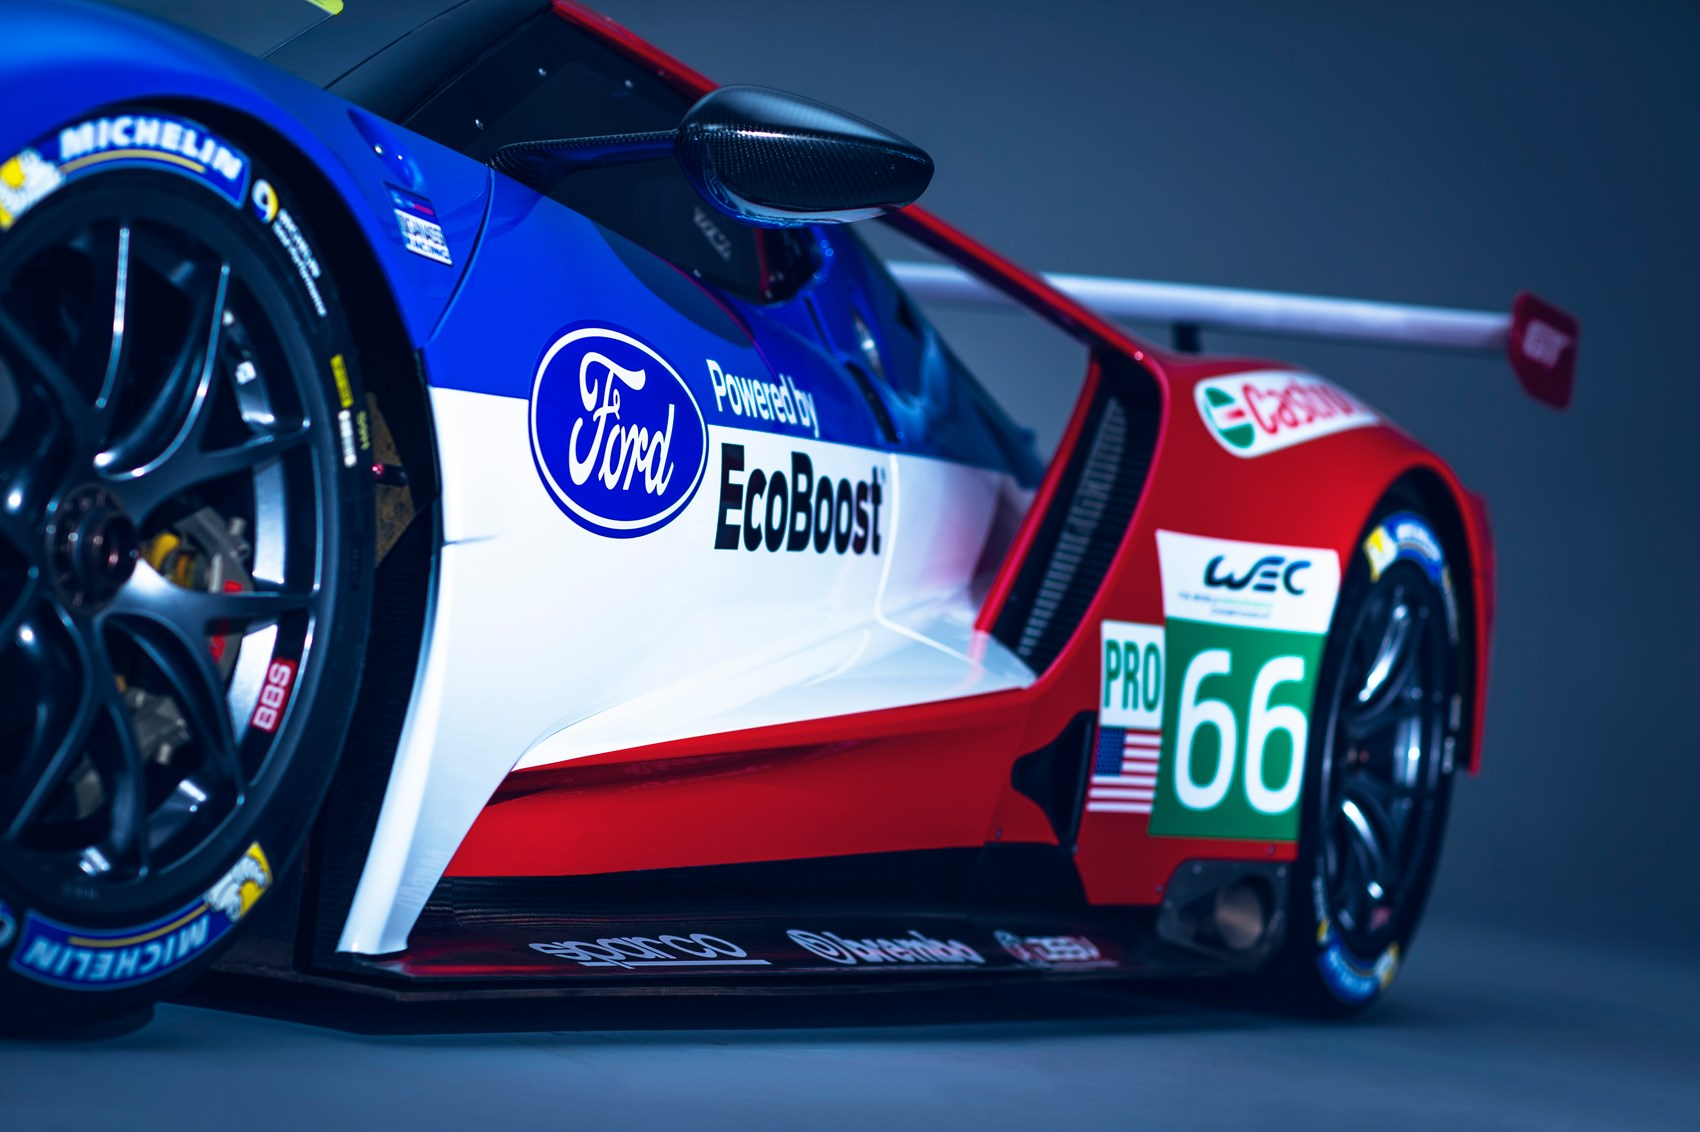 Wallpaper Night Car Race Jaguar Just How Much Of A Racing Car Is The New Ford Gt Car